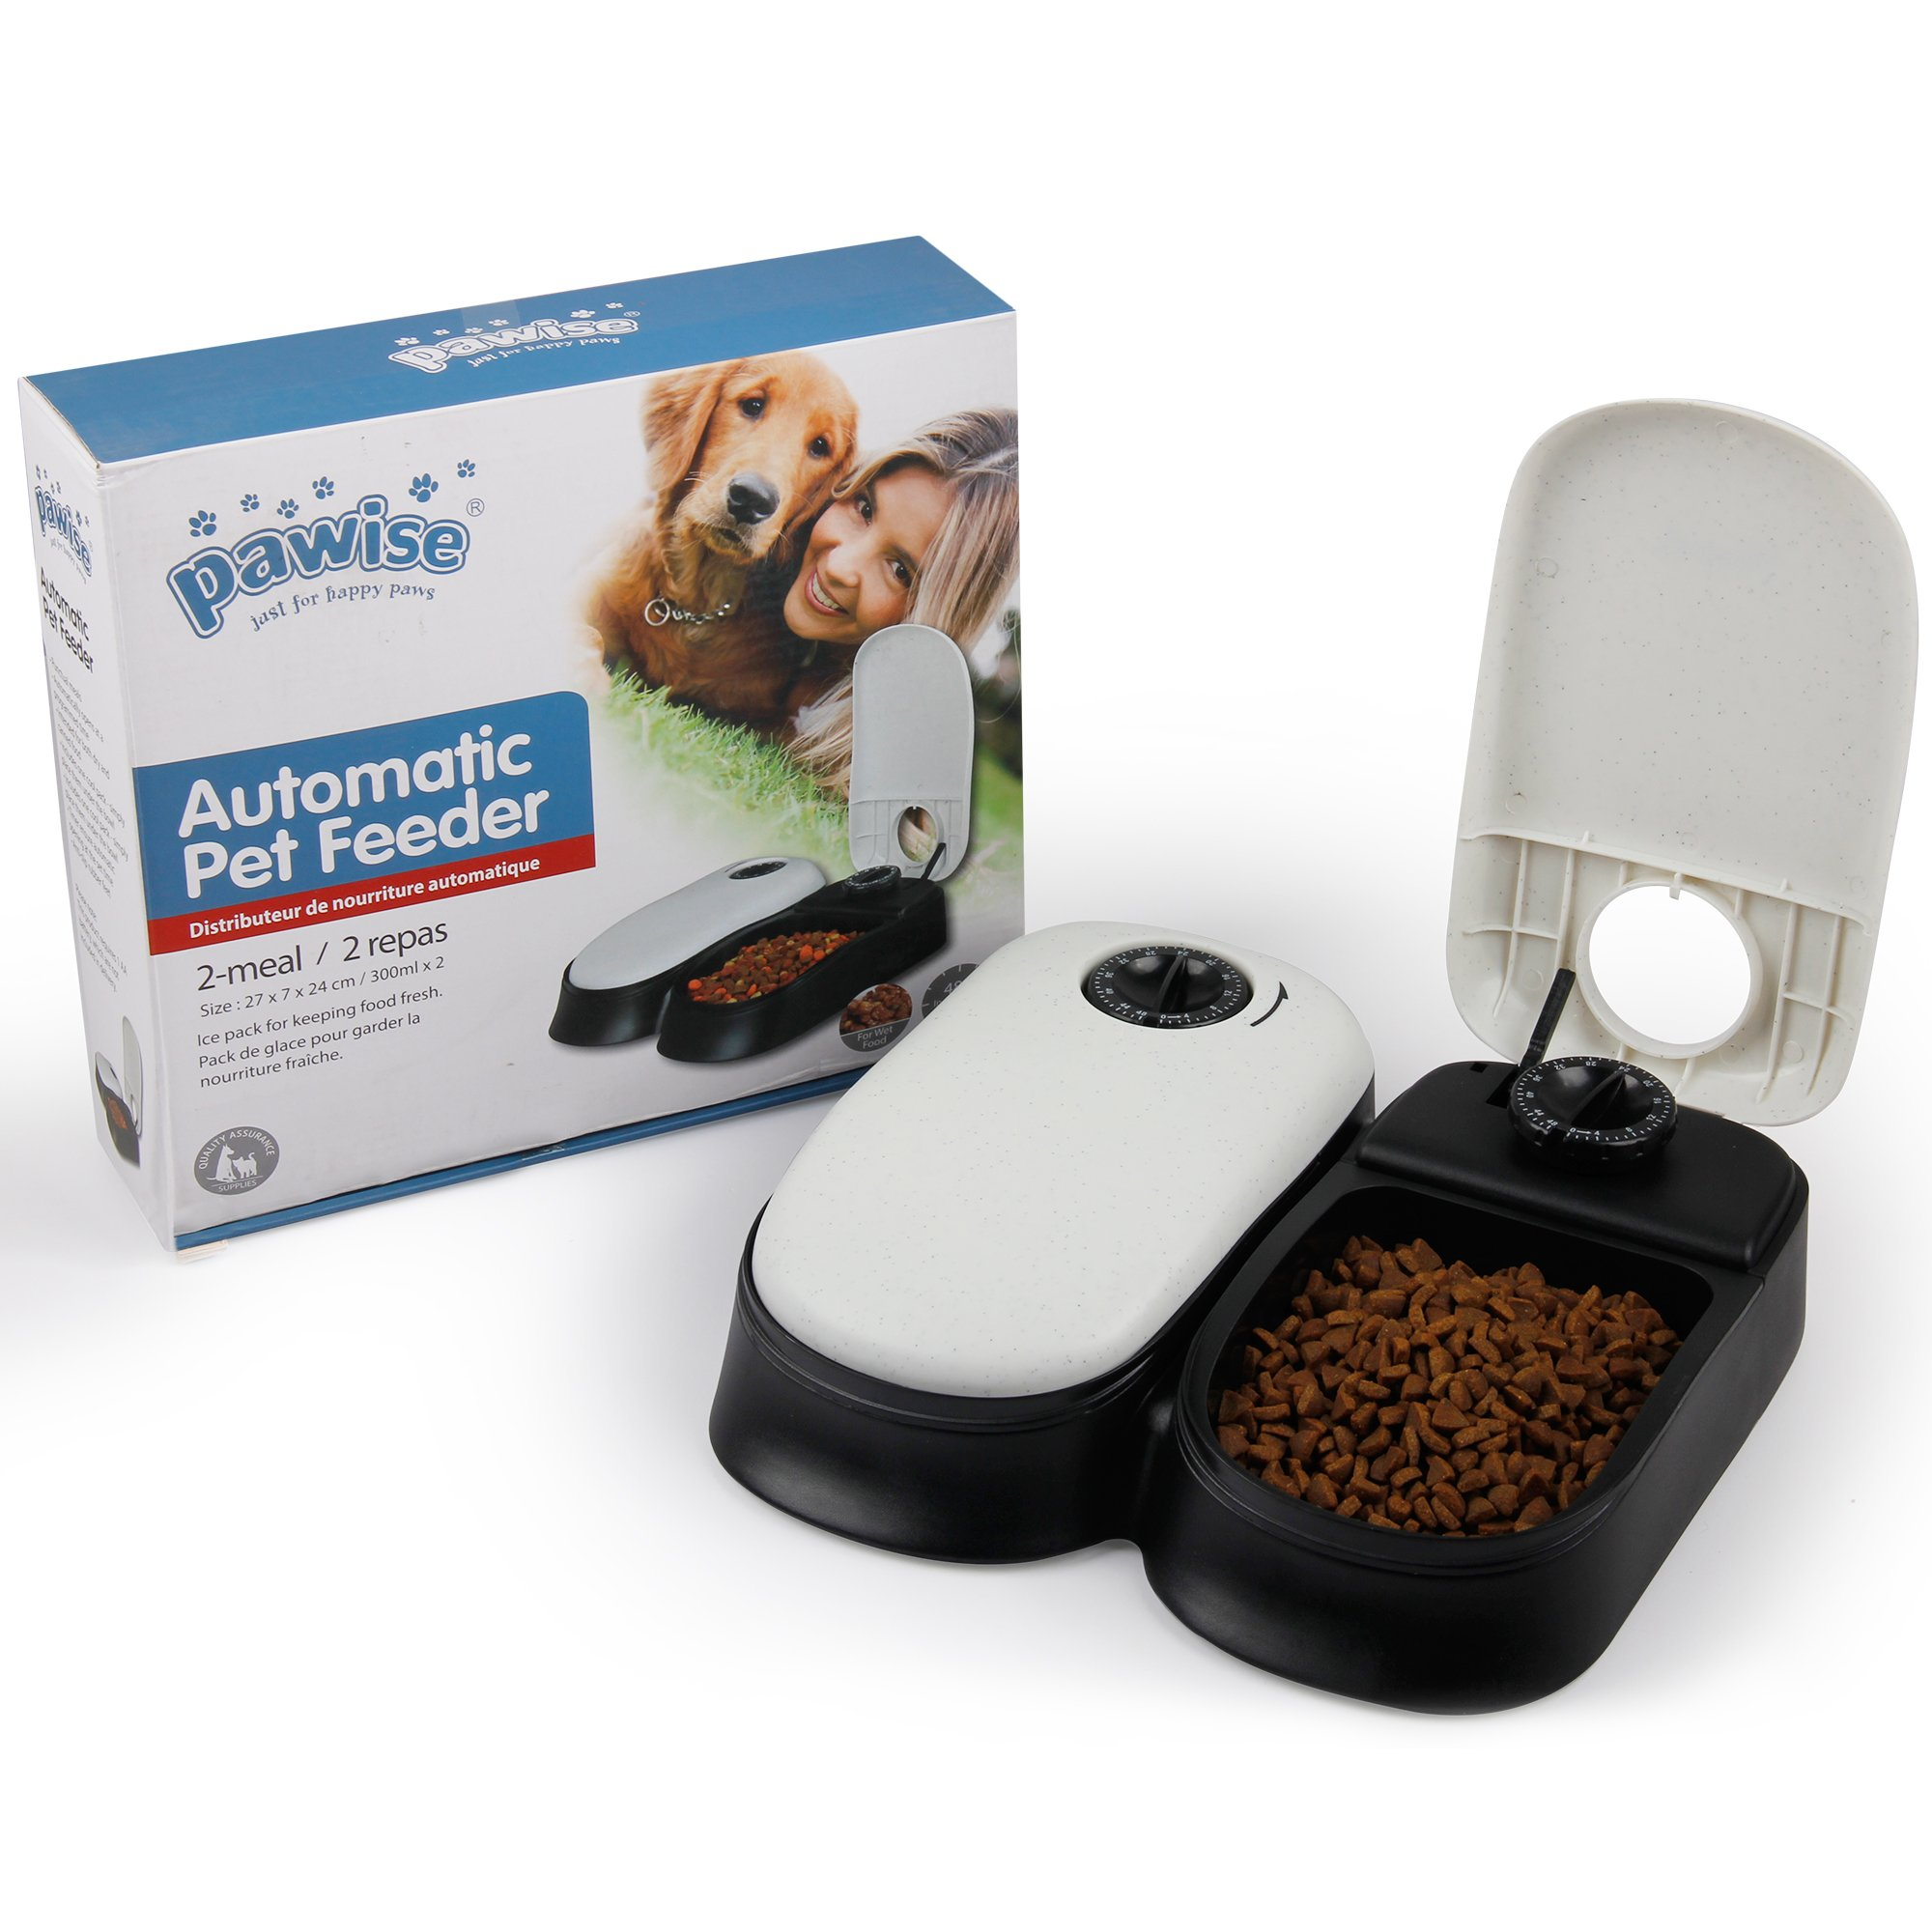 PAWISE Automatic Pet Feeder 2-Meal Food Dispenser Timed Food Bowl for Dogs Cats by PAWISE